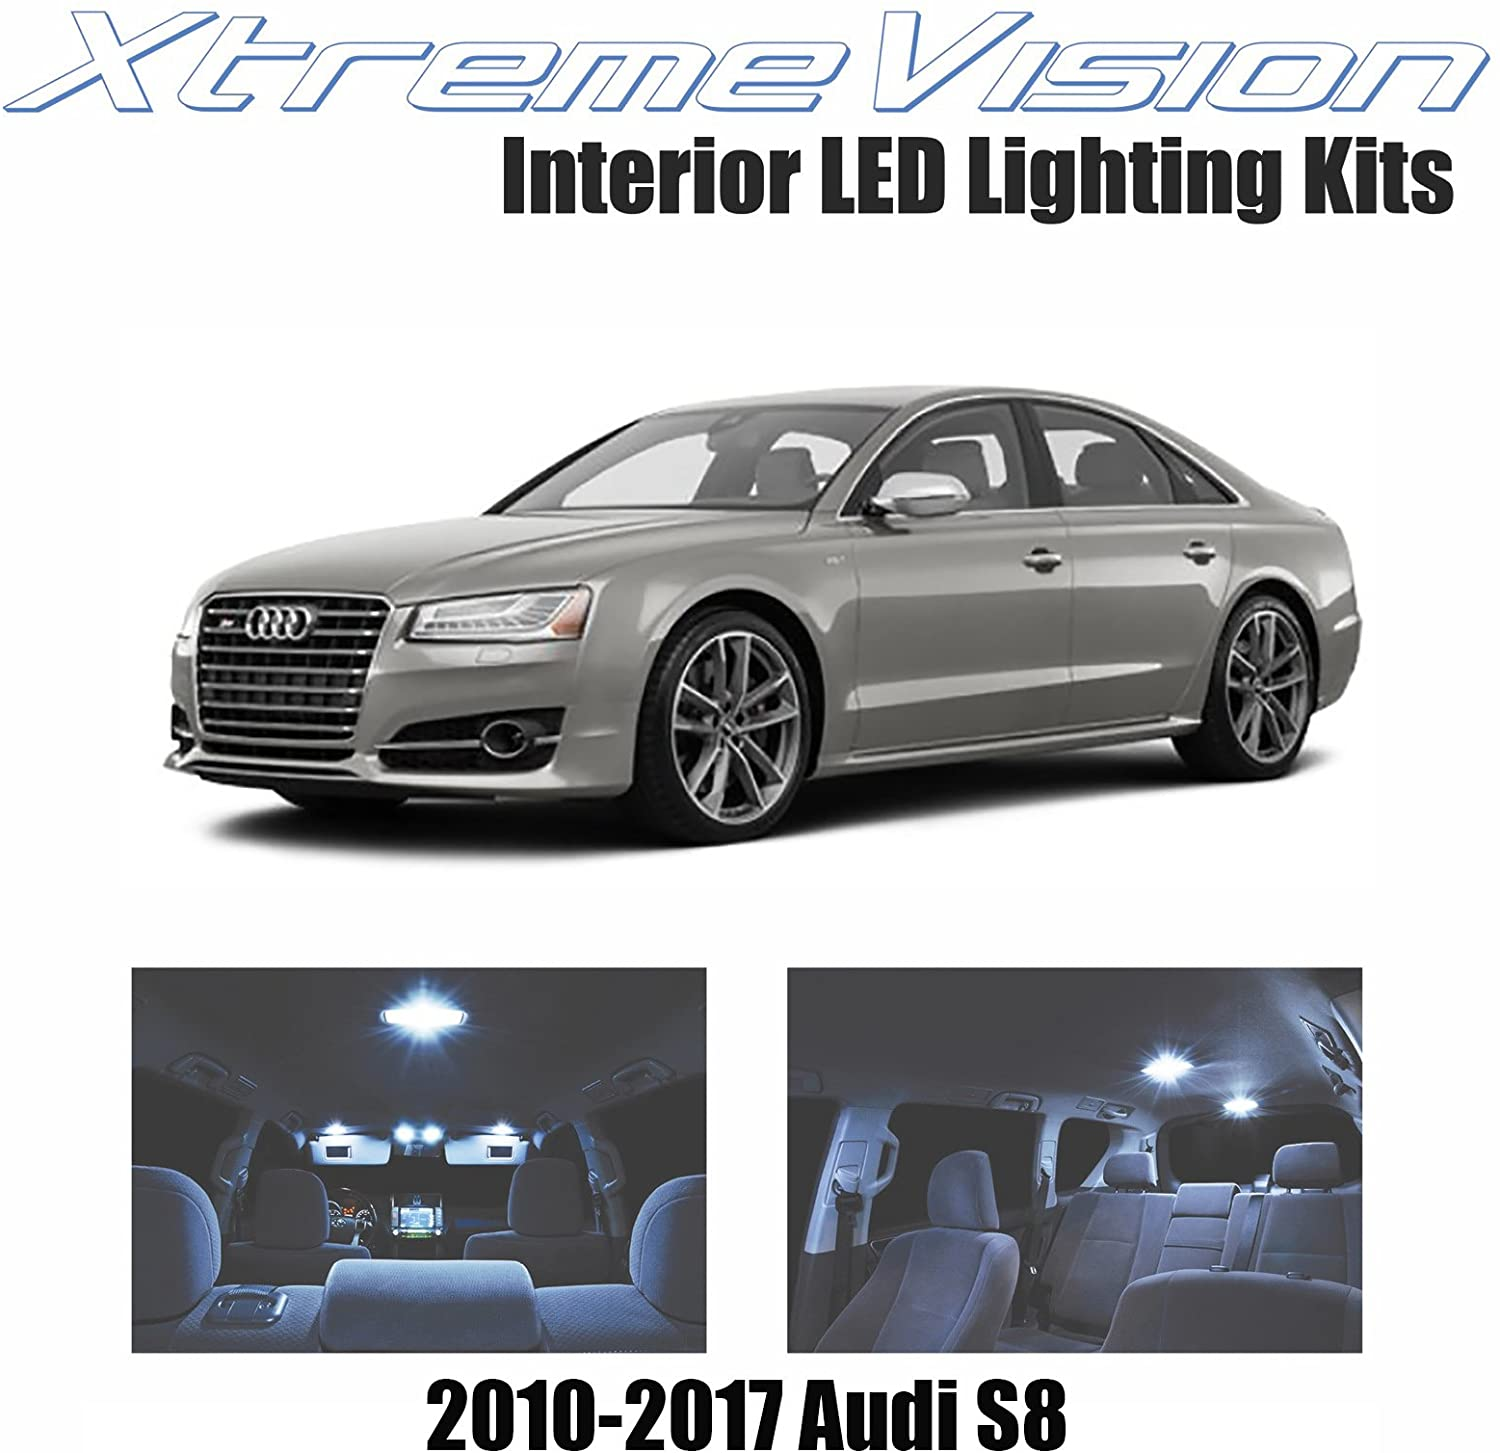 XtremeVision LED for Audi S8 2010-2017 (16 Pieces) Cool White Premium Interior LED Kit Package + Installation Tool